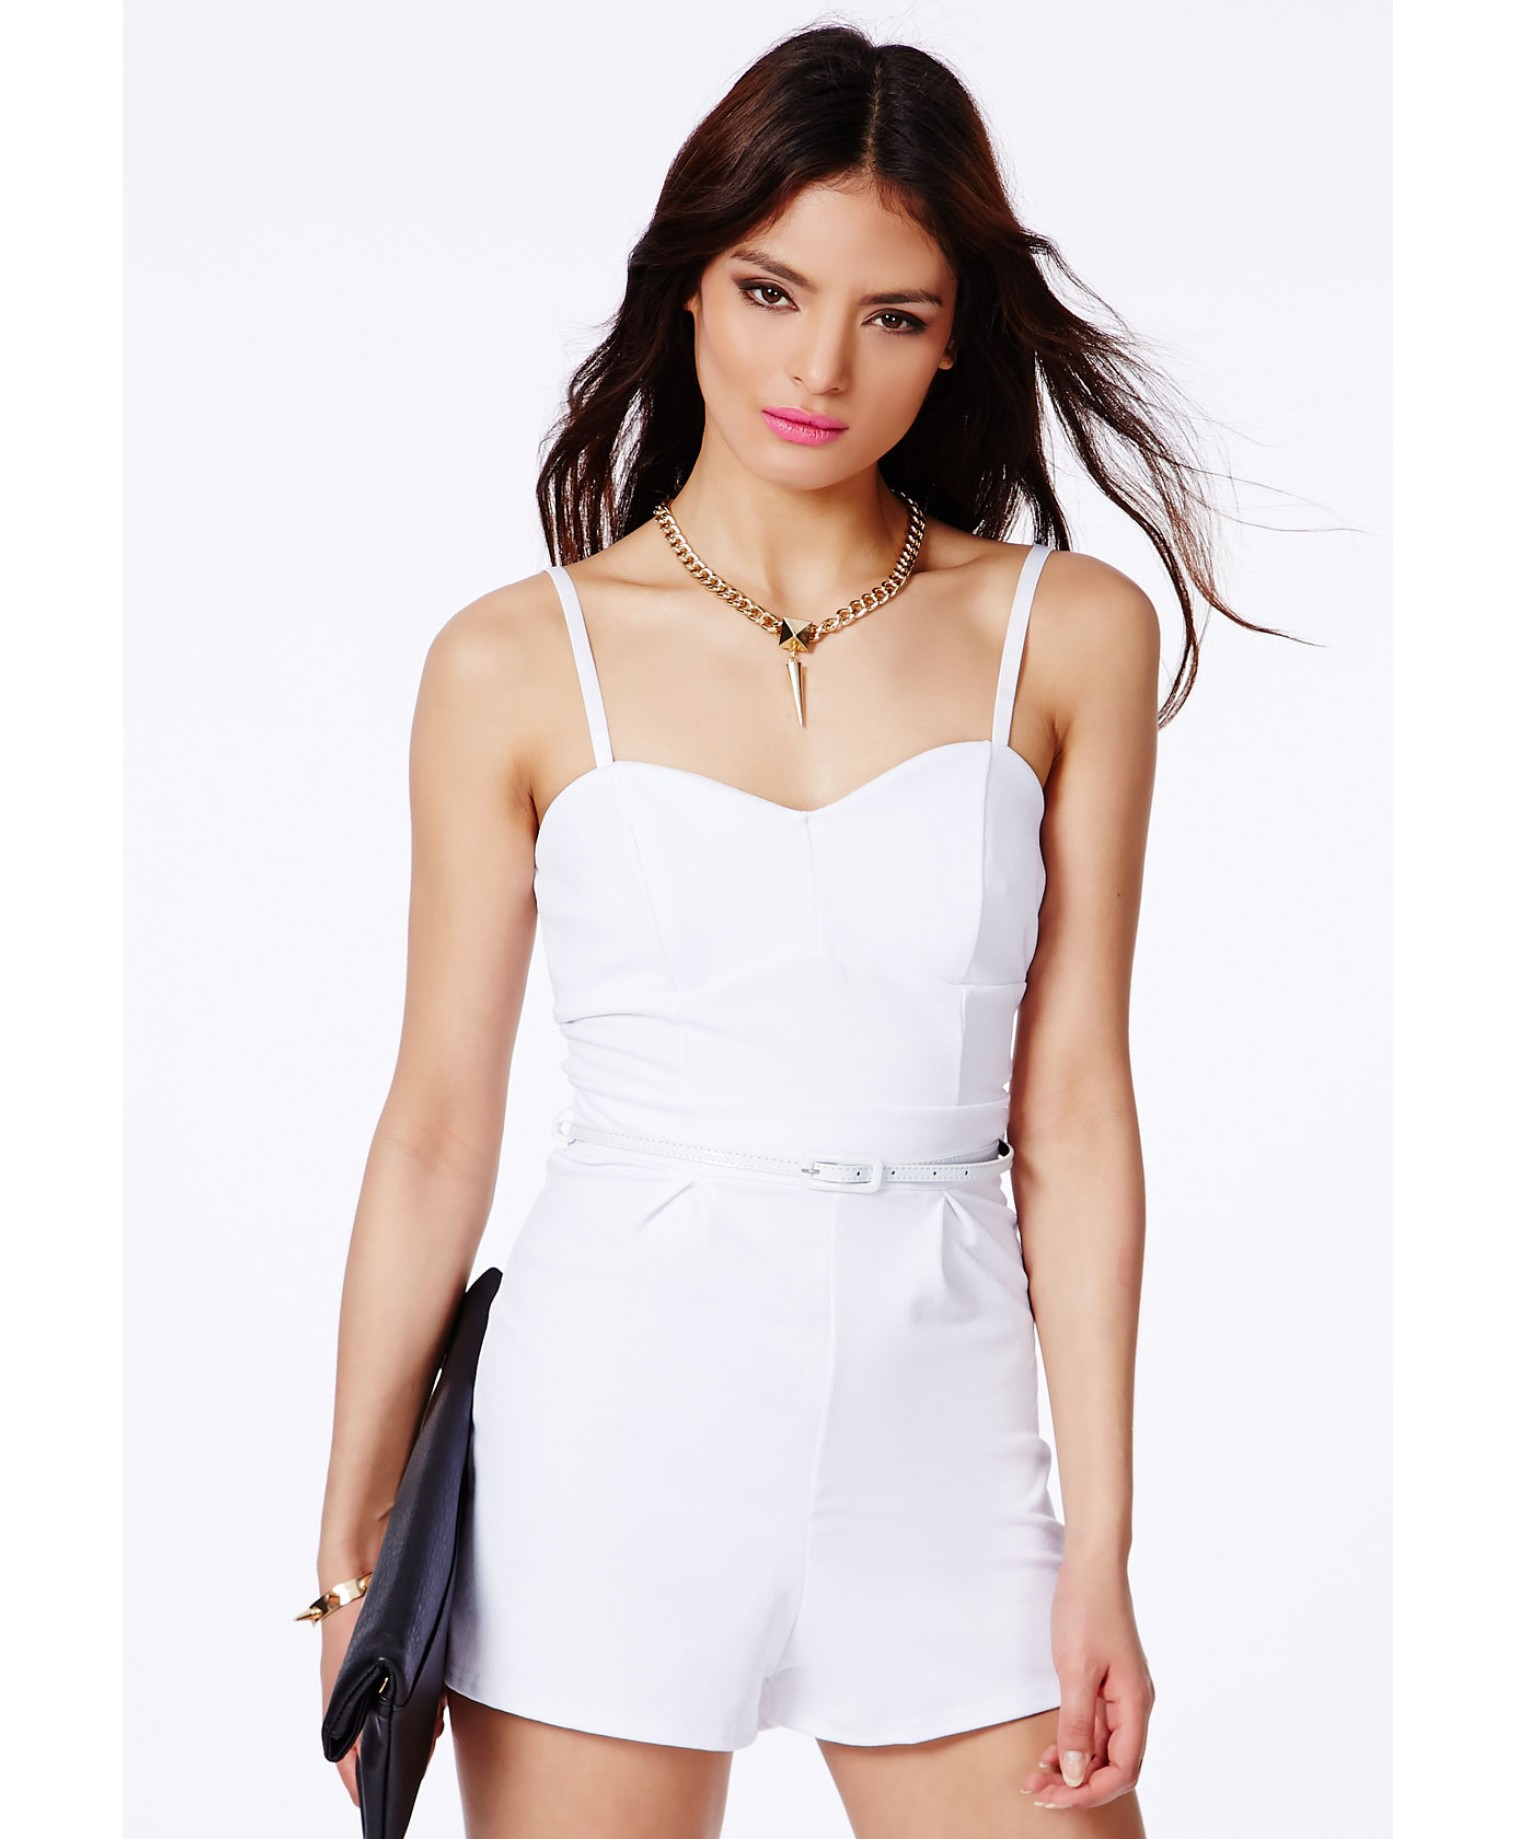 ec92d0f585 Lyst - Missguided Kaley White Tailored Playsuit with Belt in White